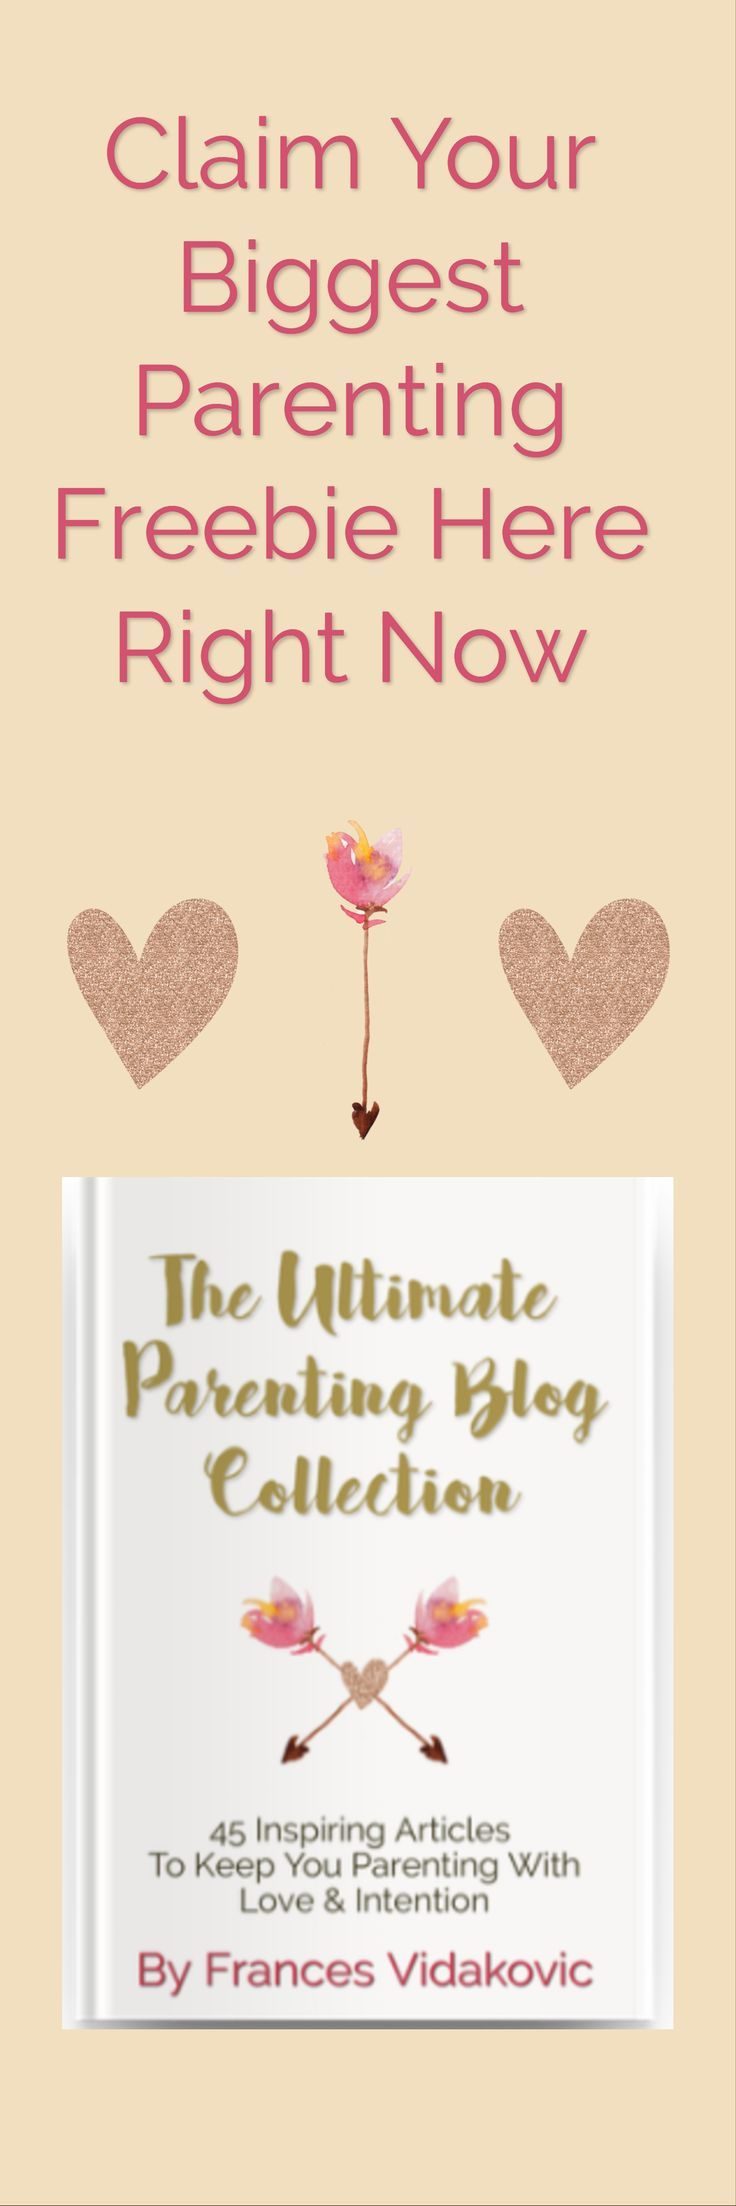 Claim Your Biggest Parenting Freebie Here Right Now | Our Biggest & Best Parenting Freebie | Grab Your Free  360 Page Book Here | Best Parenting Tips | Best Parenting Advice | Parenting Freebies